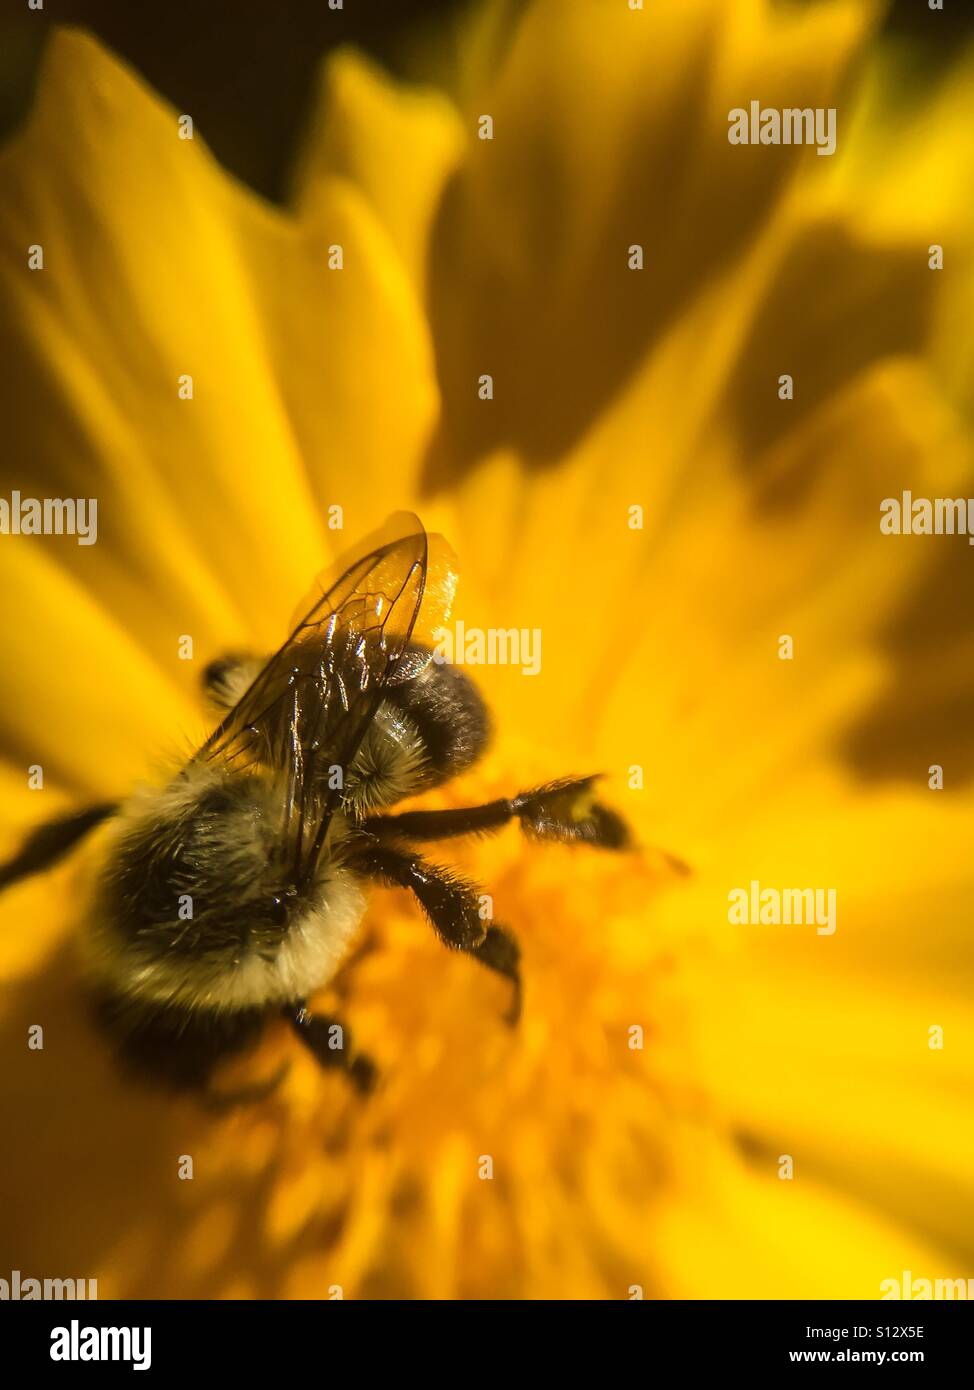 Bee in a yellow flower - Stock Image